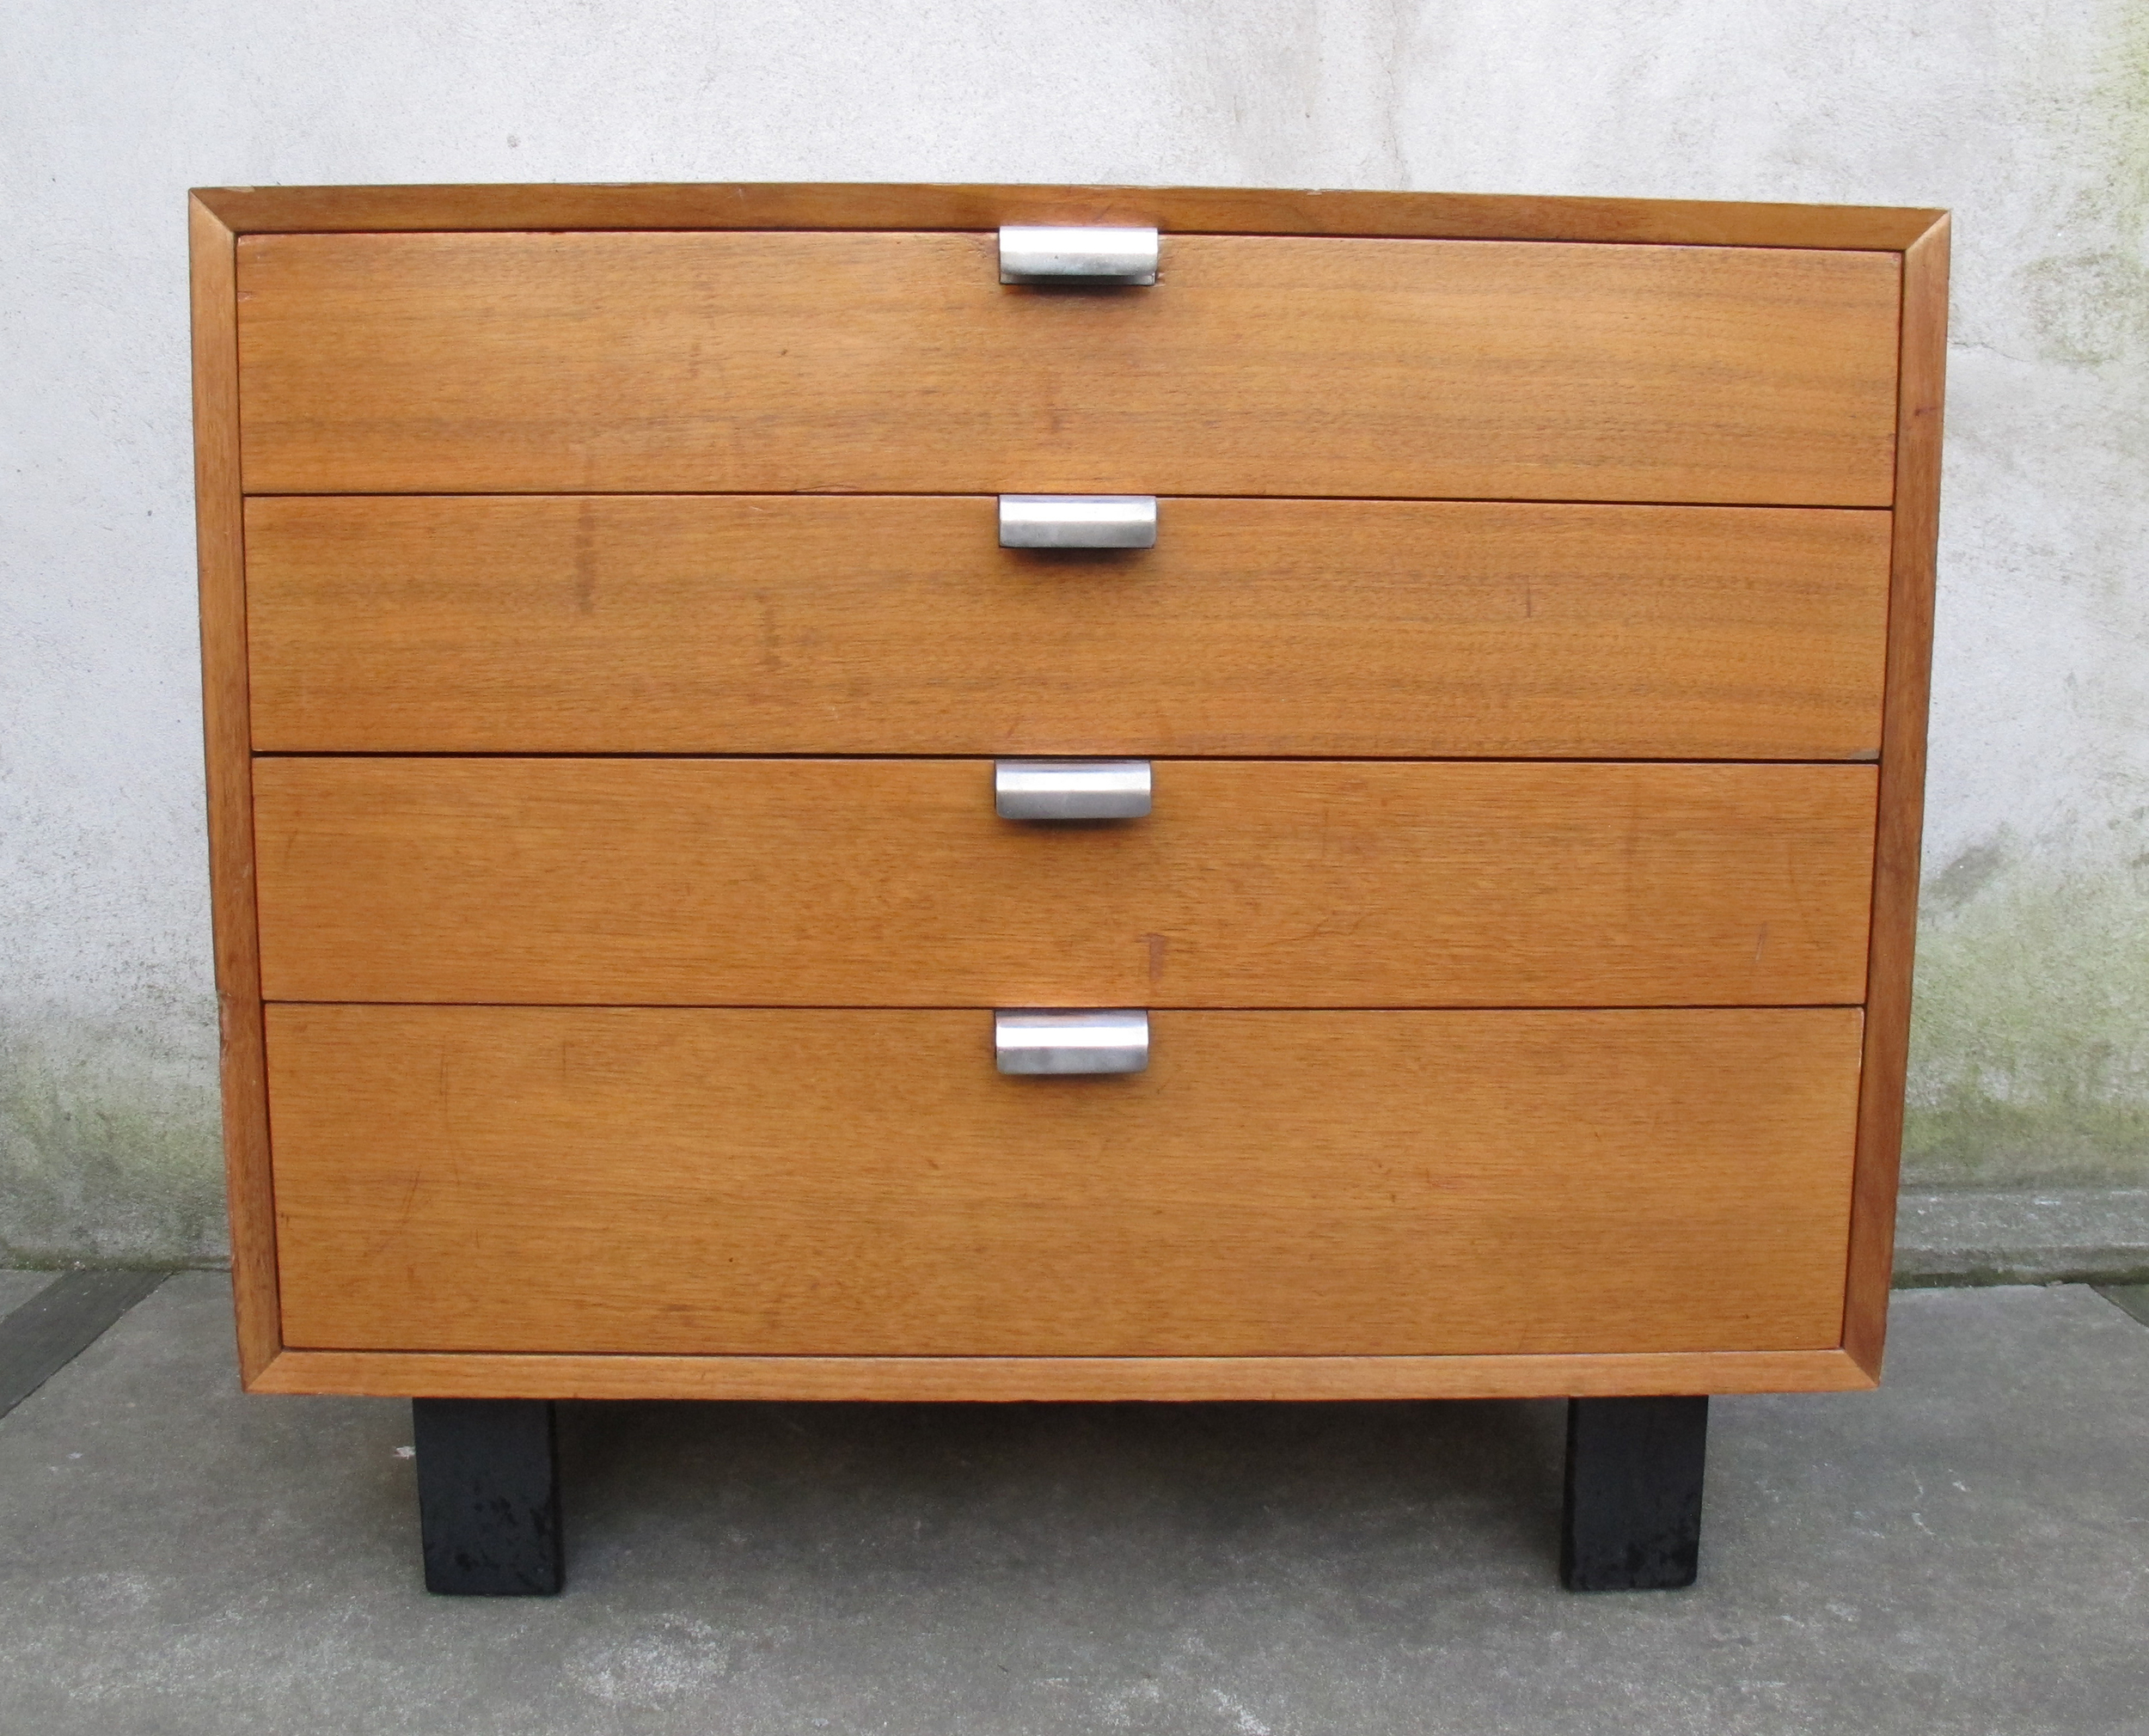 MID CENTURY OAK CABINET BY GEORGE NELSON FOR HERMAN MILLER